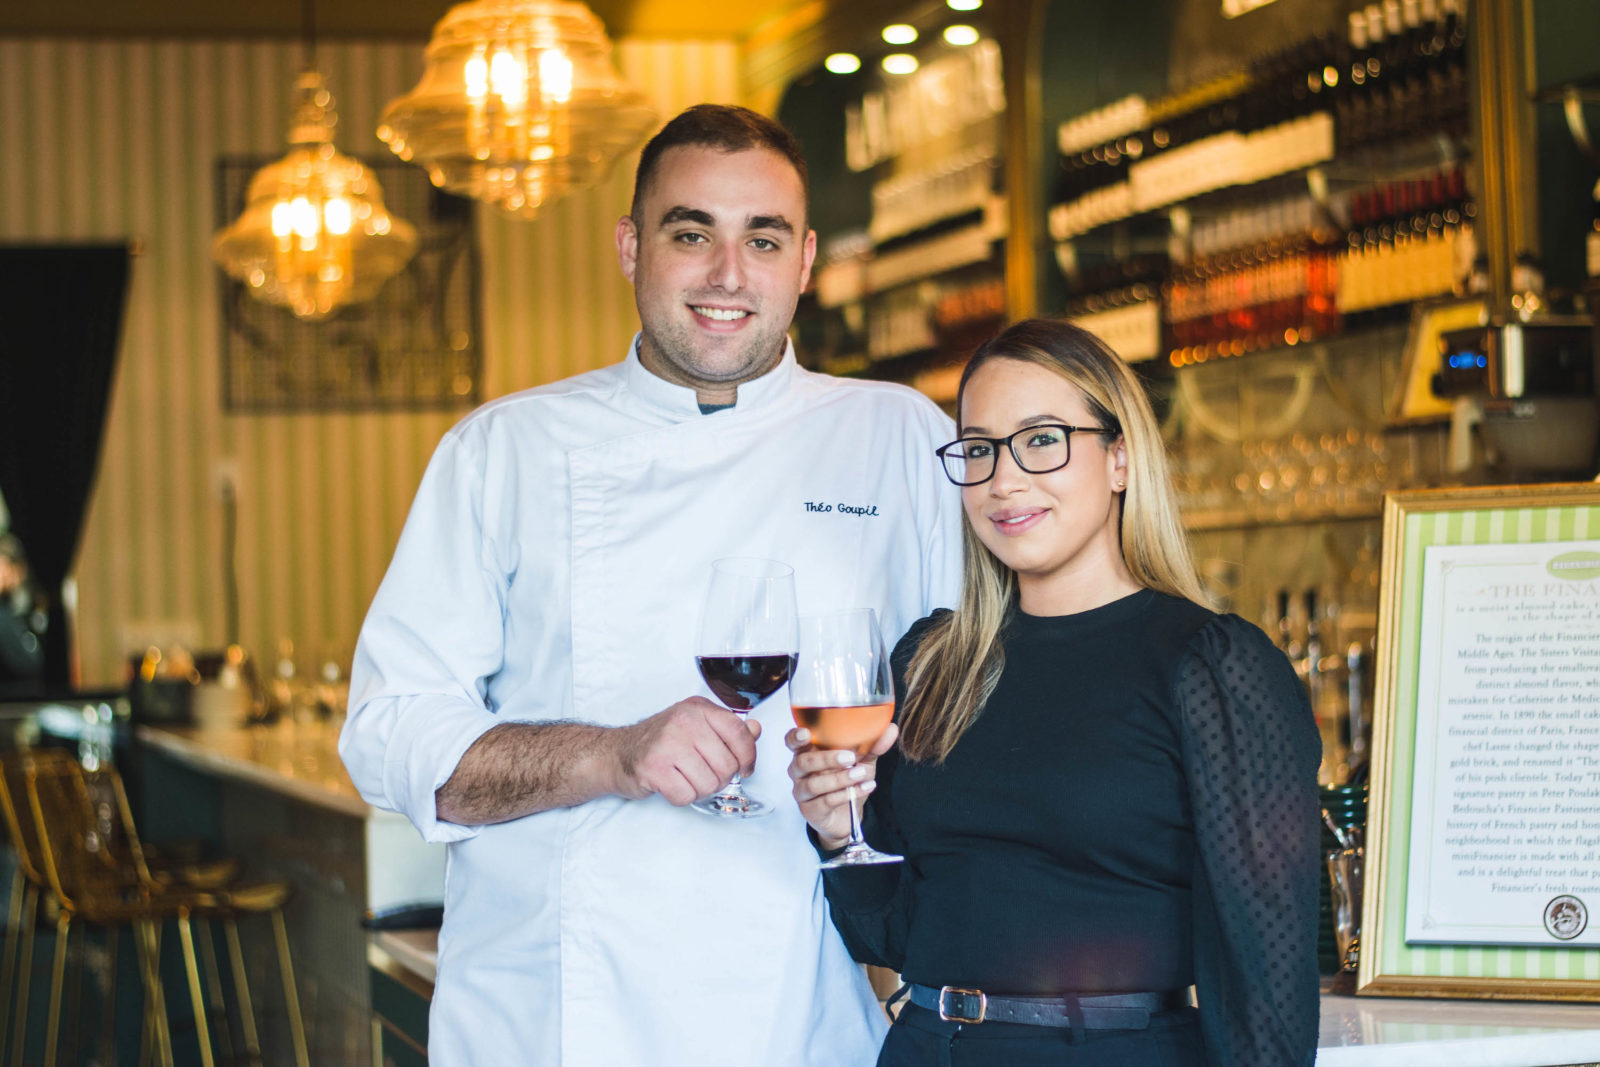 Chef Théo and Danielle Goupil cheers wine glasses in front of the Financier Bistro.